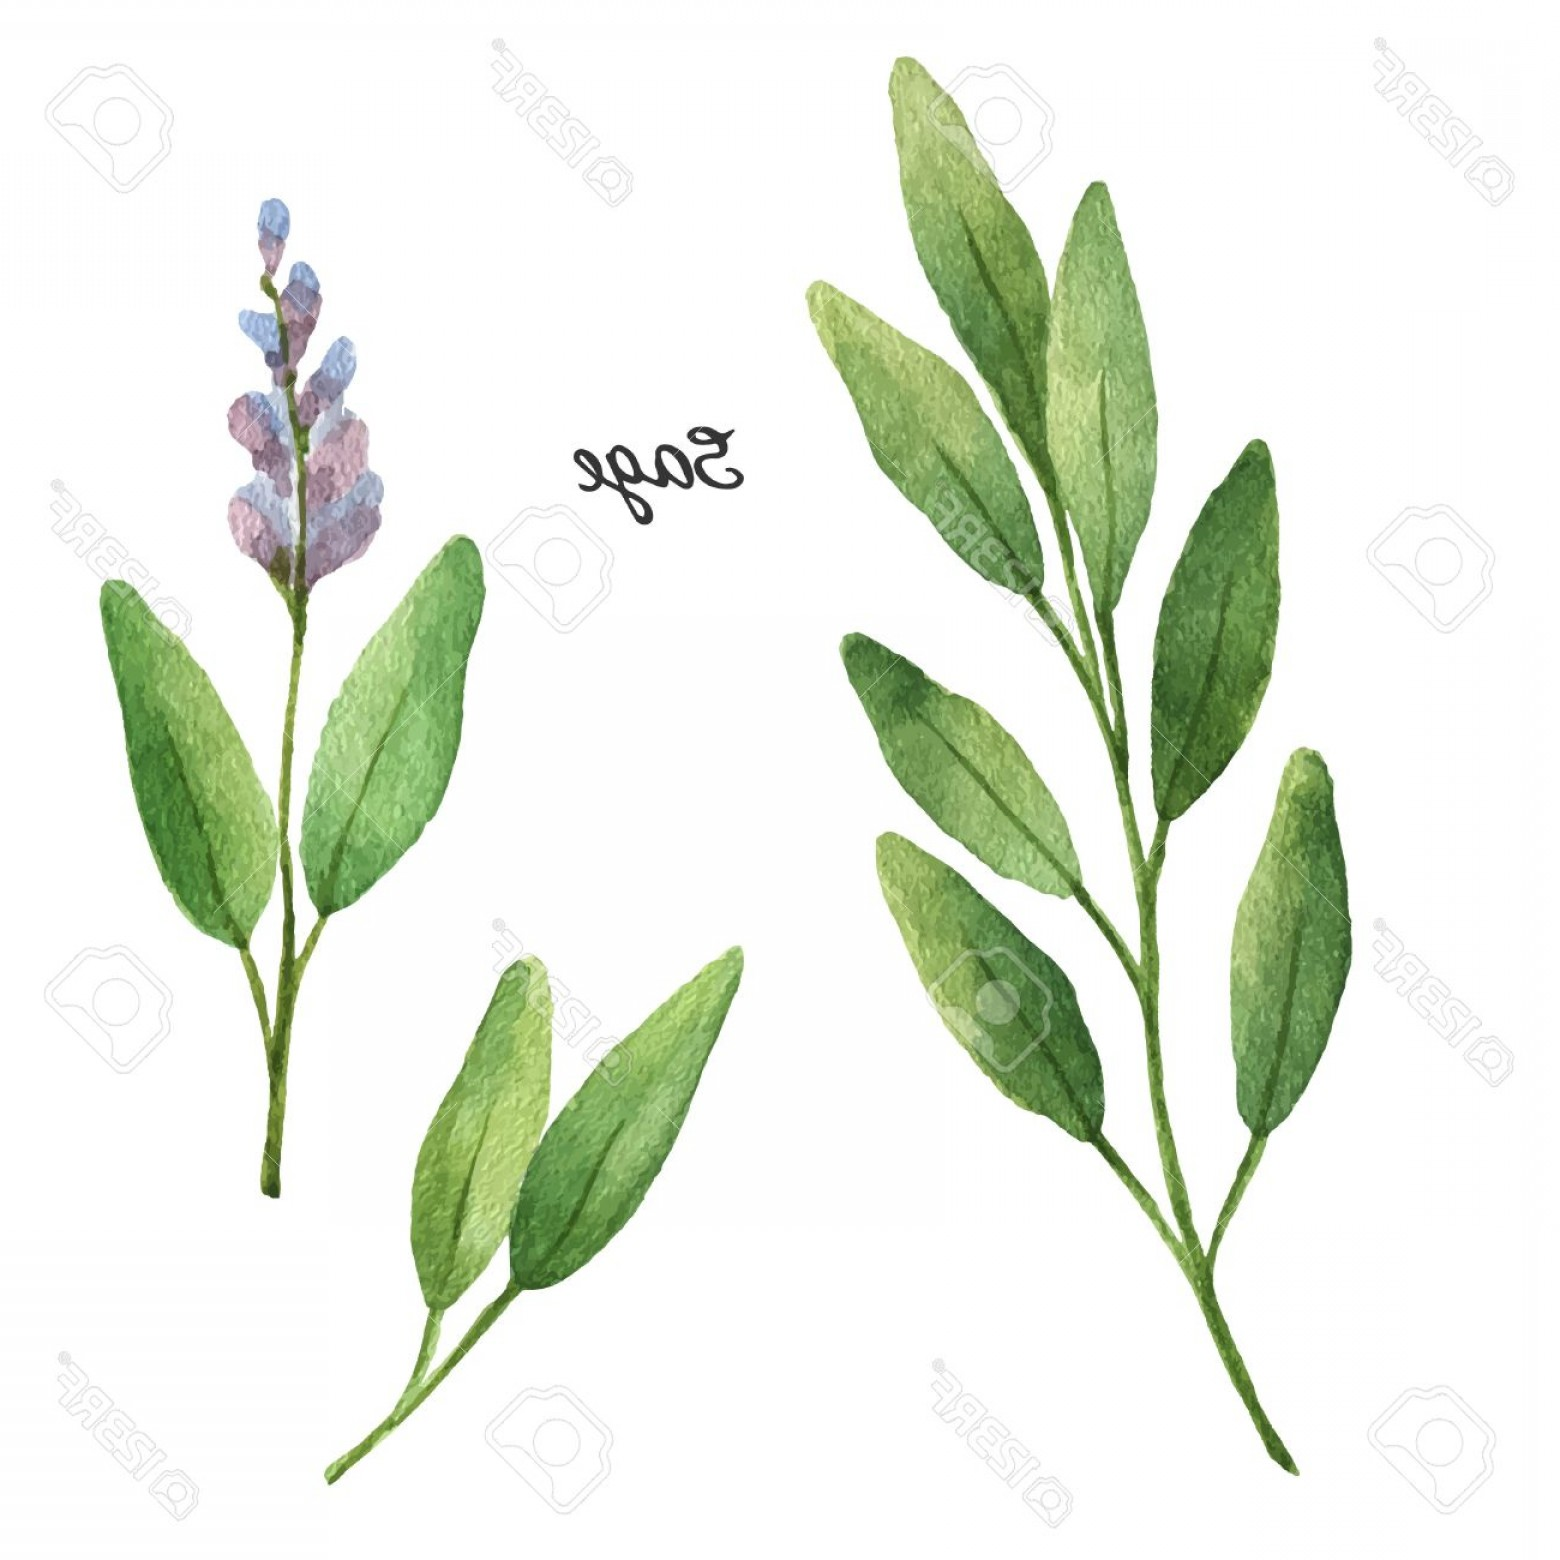 Sage Plant Vector: Photostock Vector Watercolor Branches And Leaves Of Sage Eco Products Isolated On White Background Watercolor Vector I